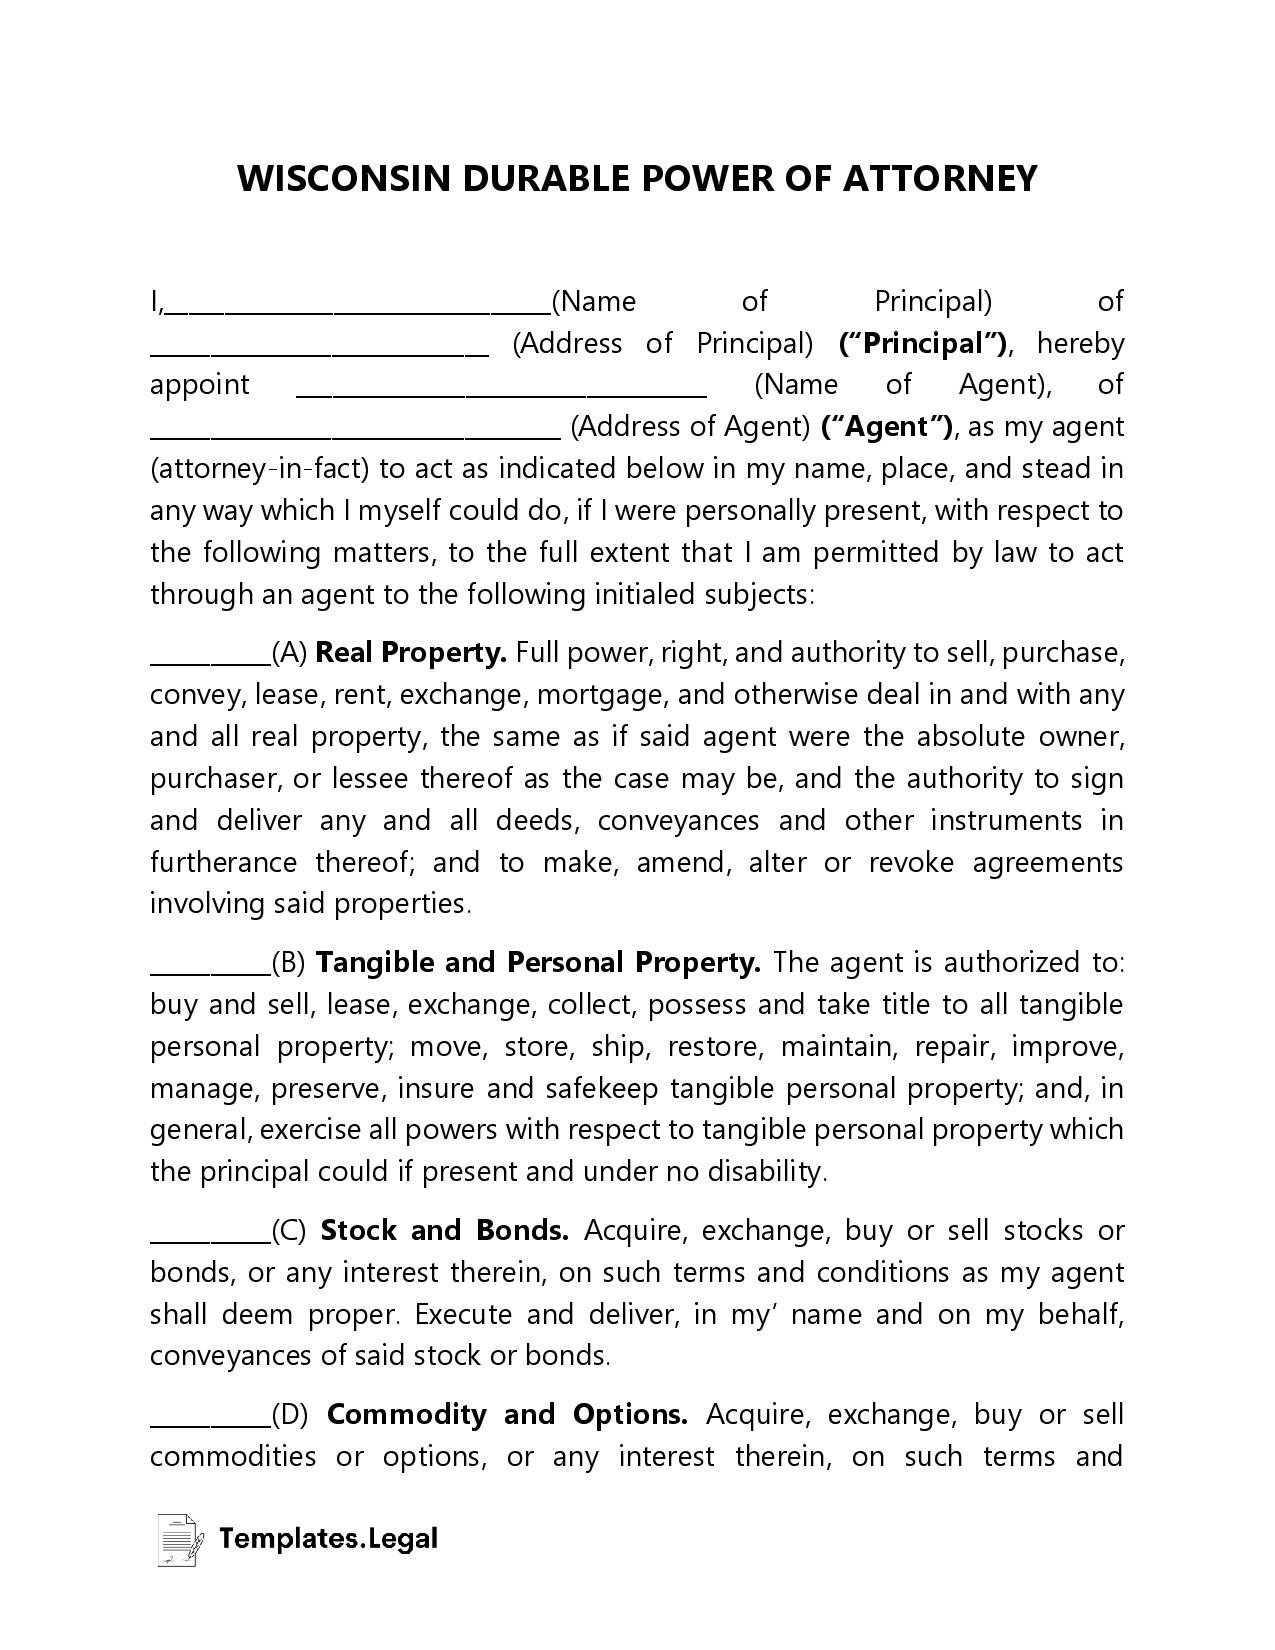 Wisconsin Durable Power of Attorney - Templates.Legal